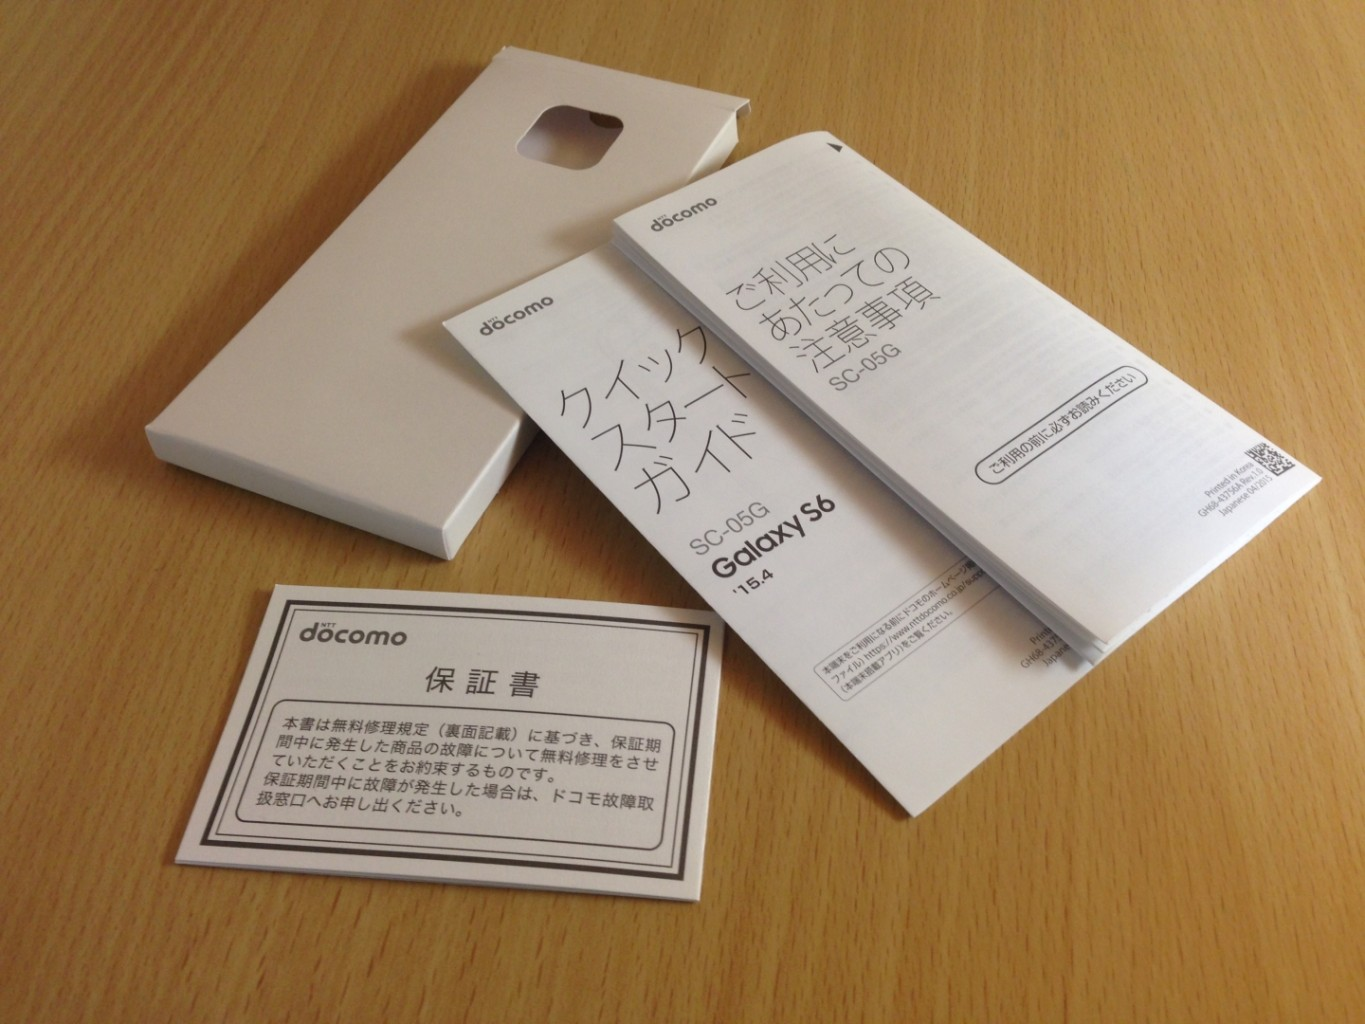 galaxy-s6_sc-05g_unboxing_4